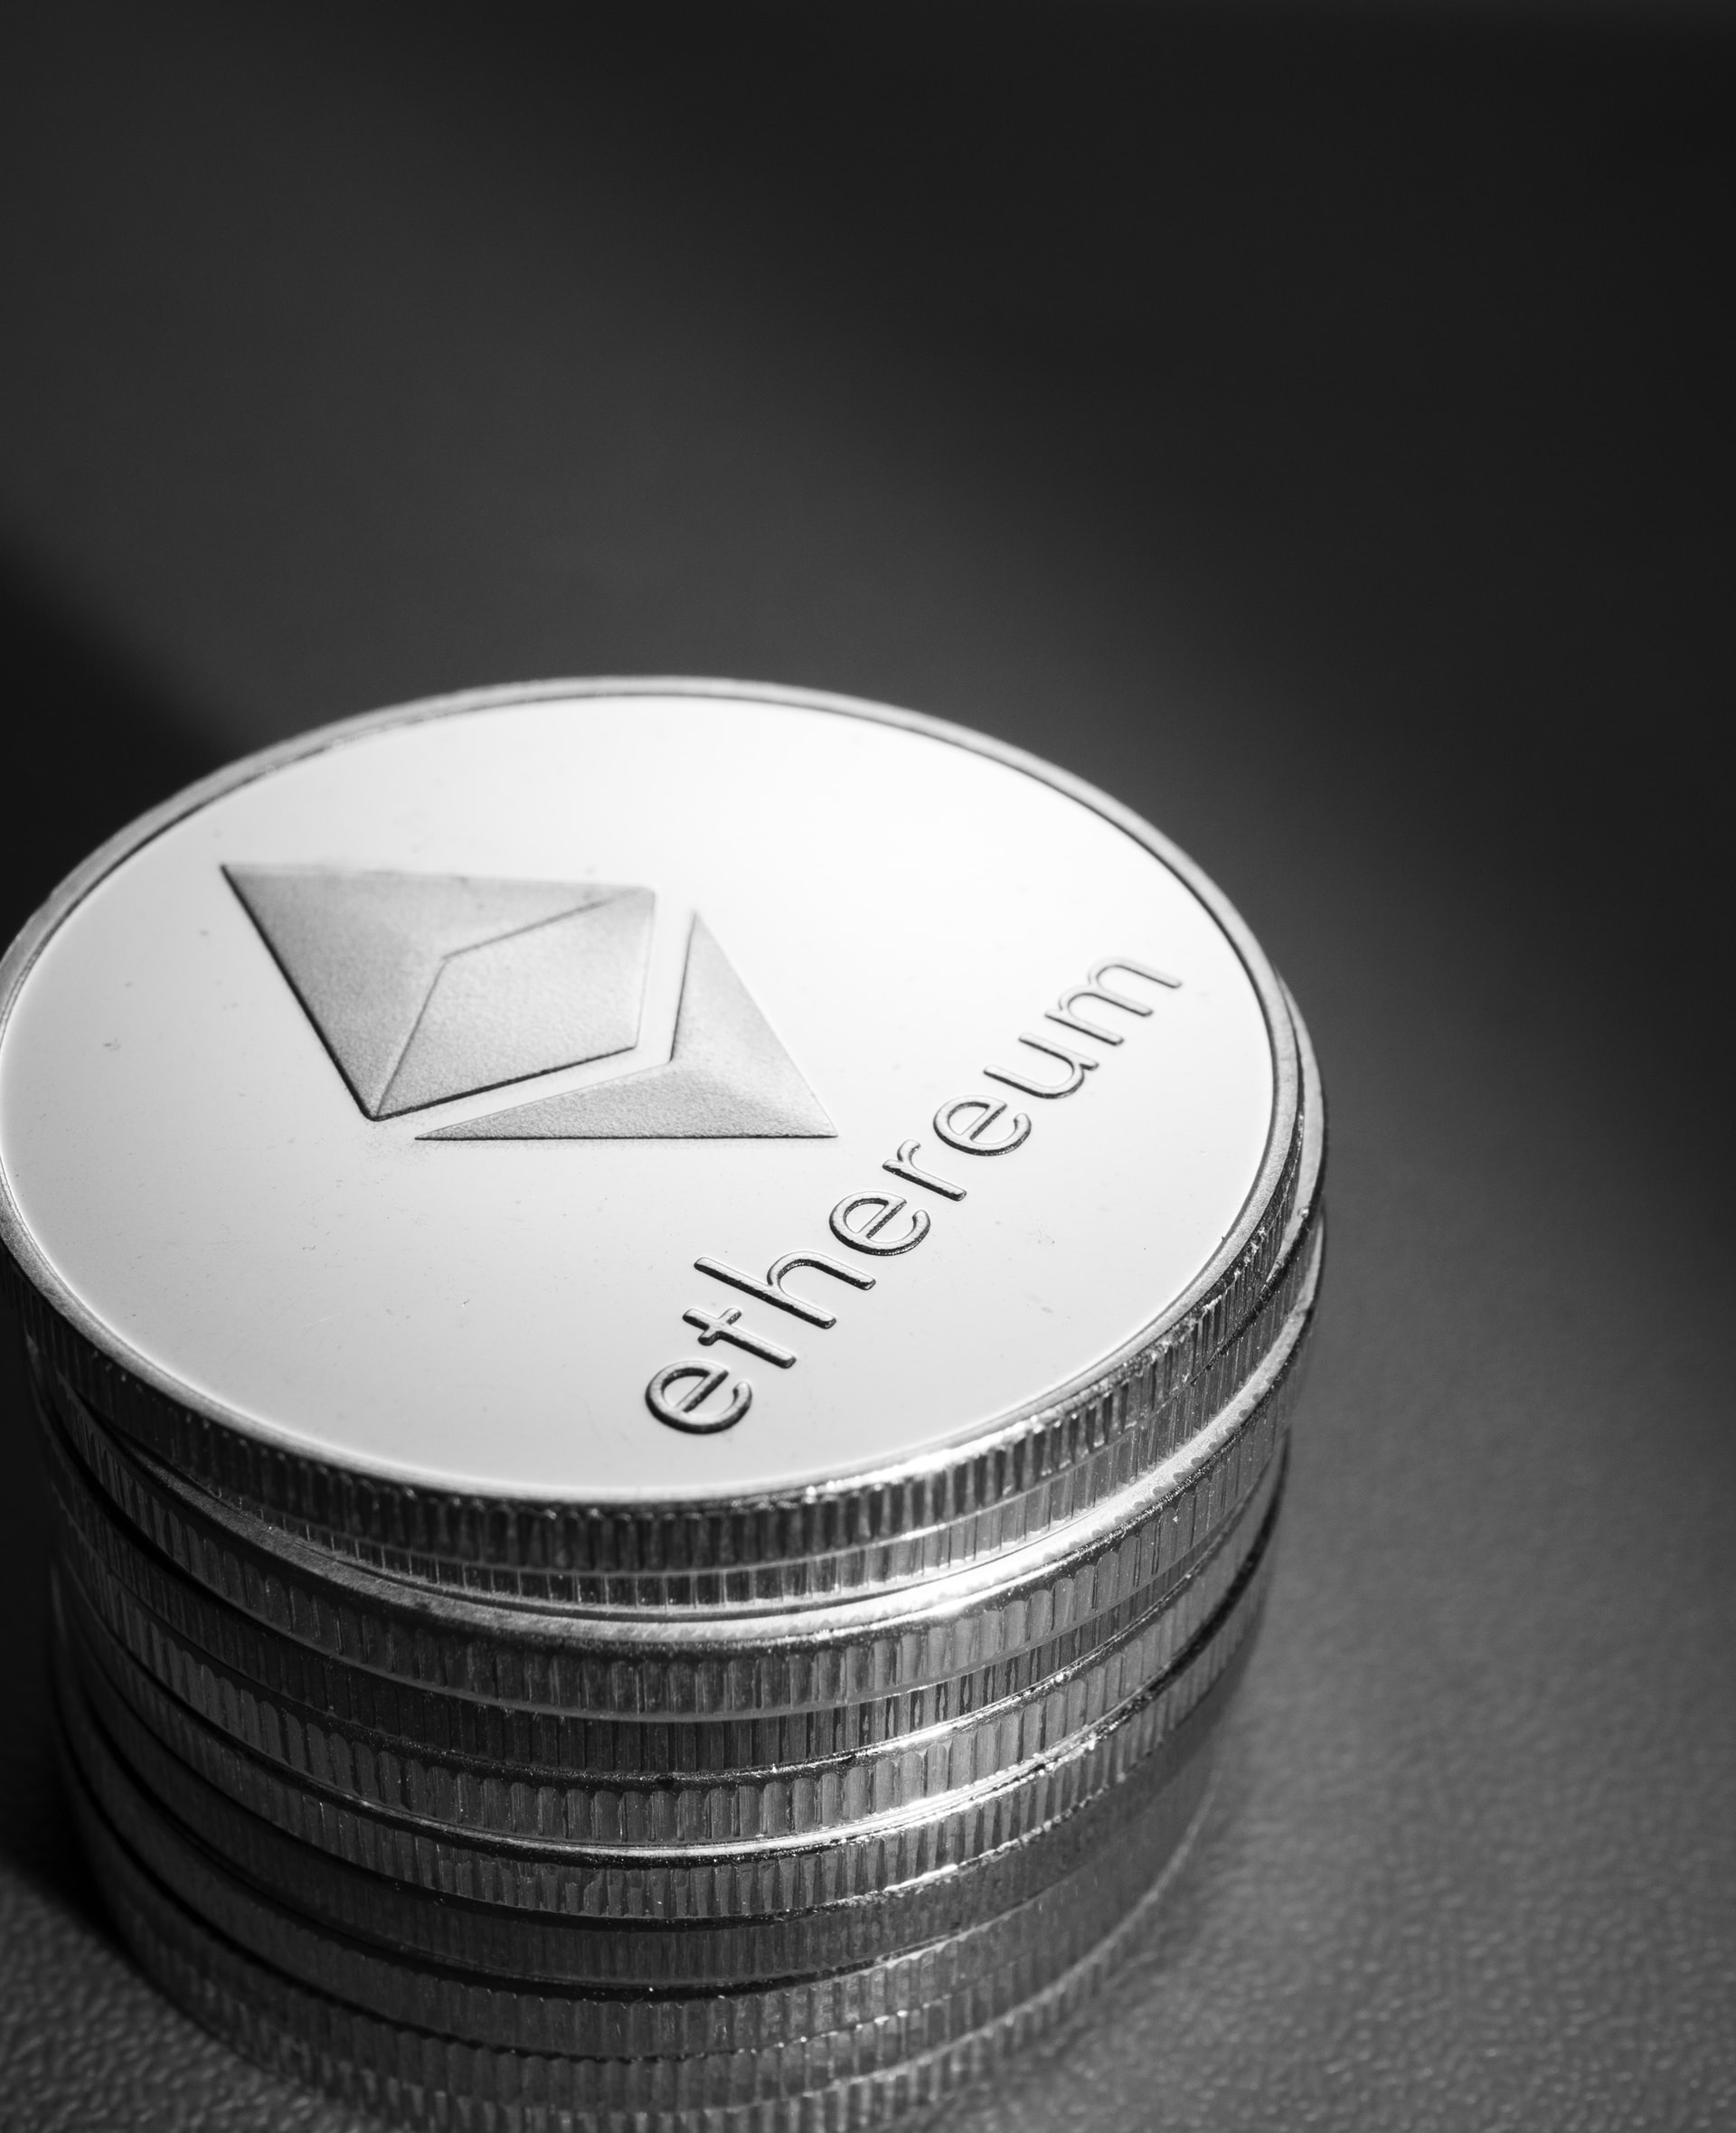 Ethereum Investment Guide Article Image